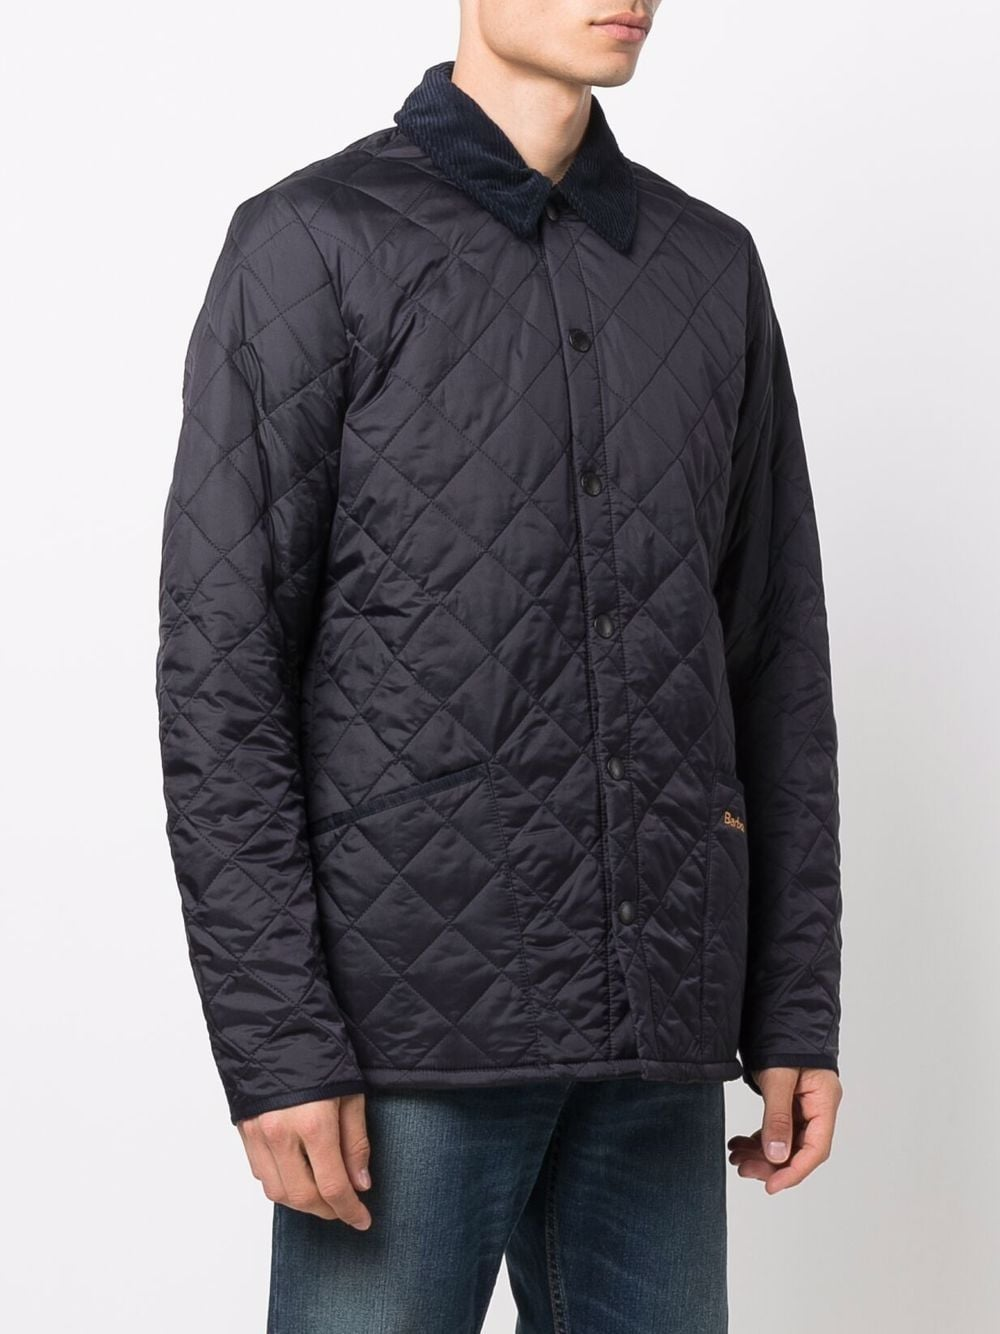 quilted jacket man blue navy BARBOUR | Jackets | MQU0240NY92